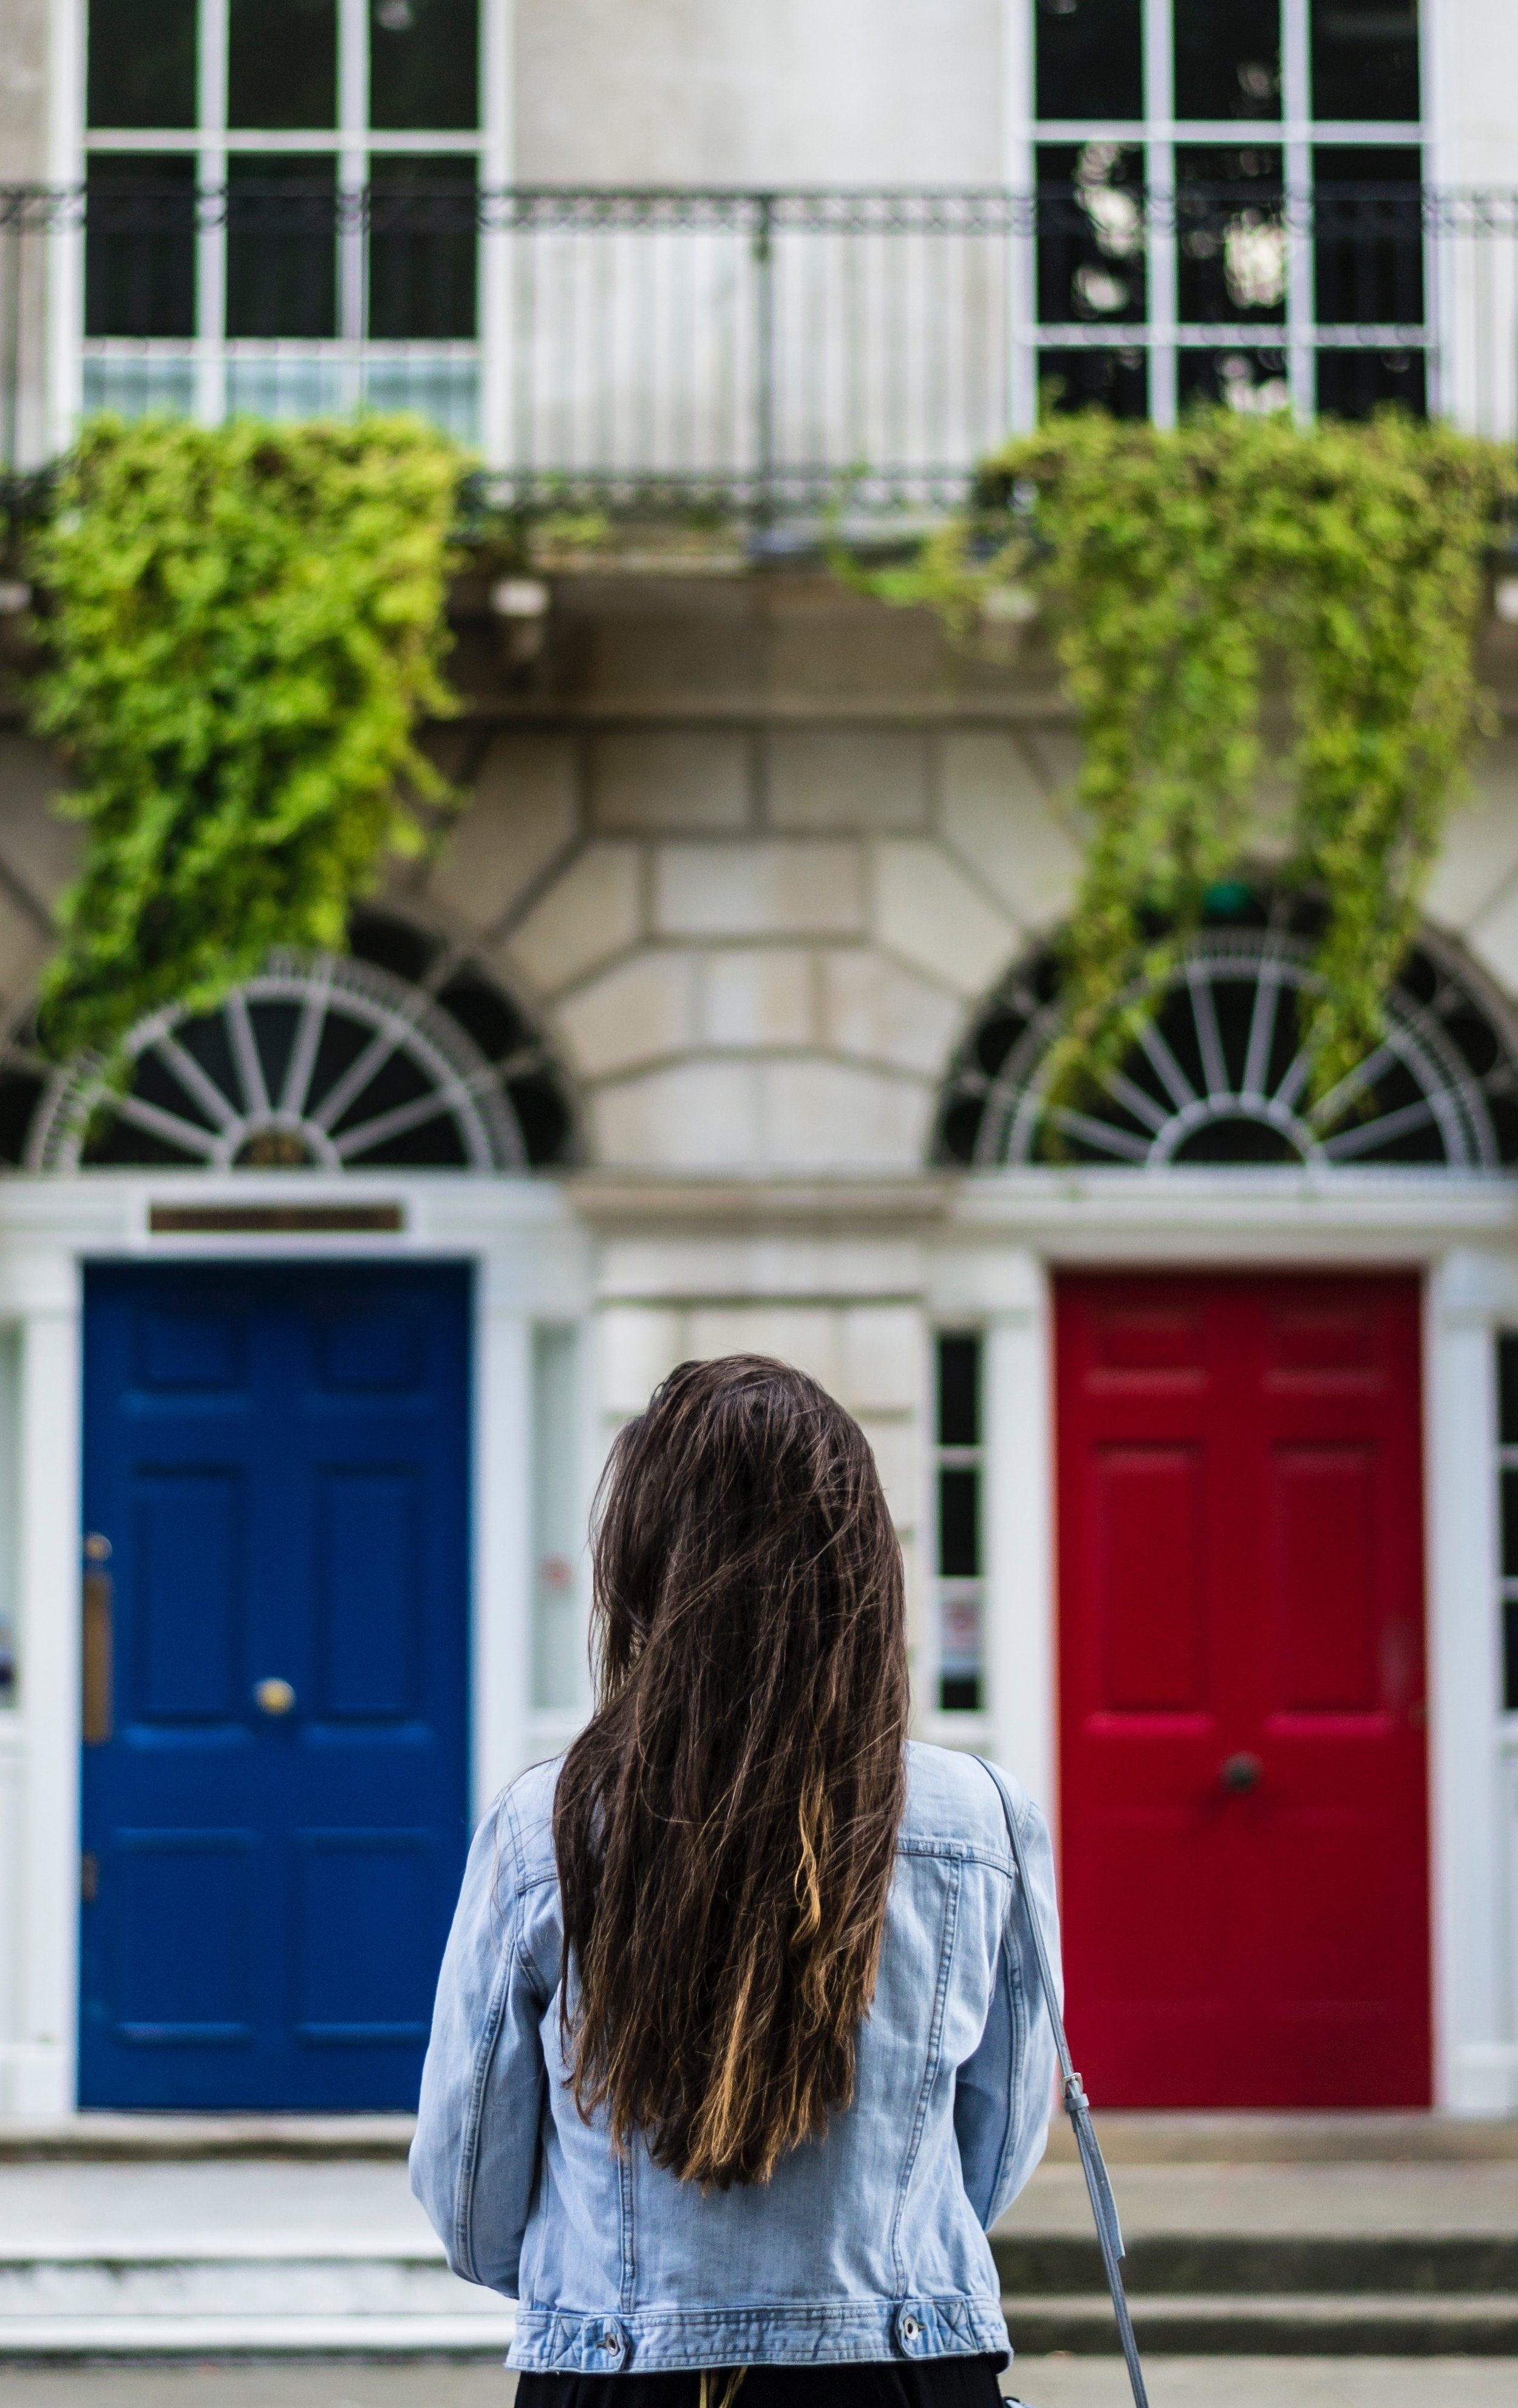 Explore Your Mind: Woman with dark hair standing in front of two doors; one red and one blue.